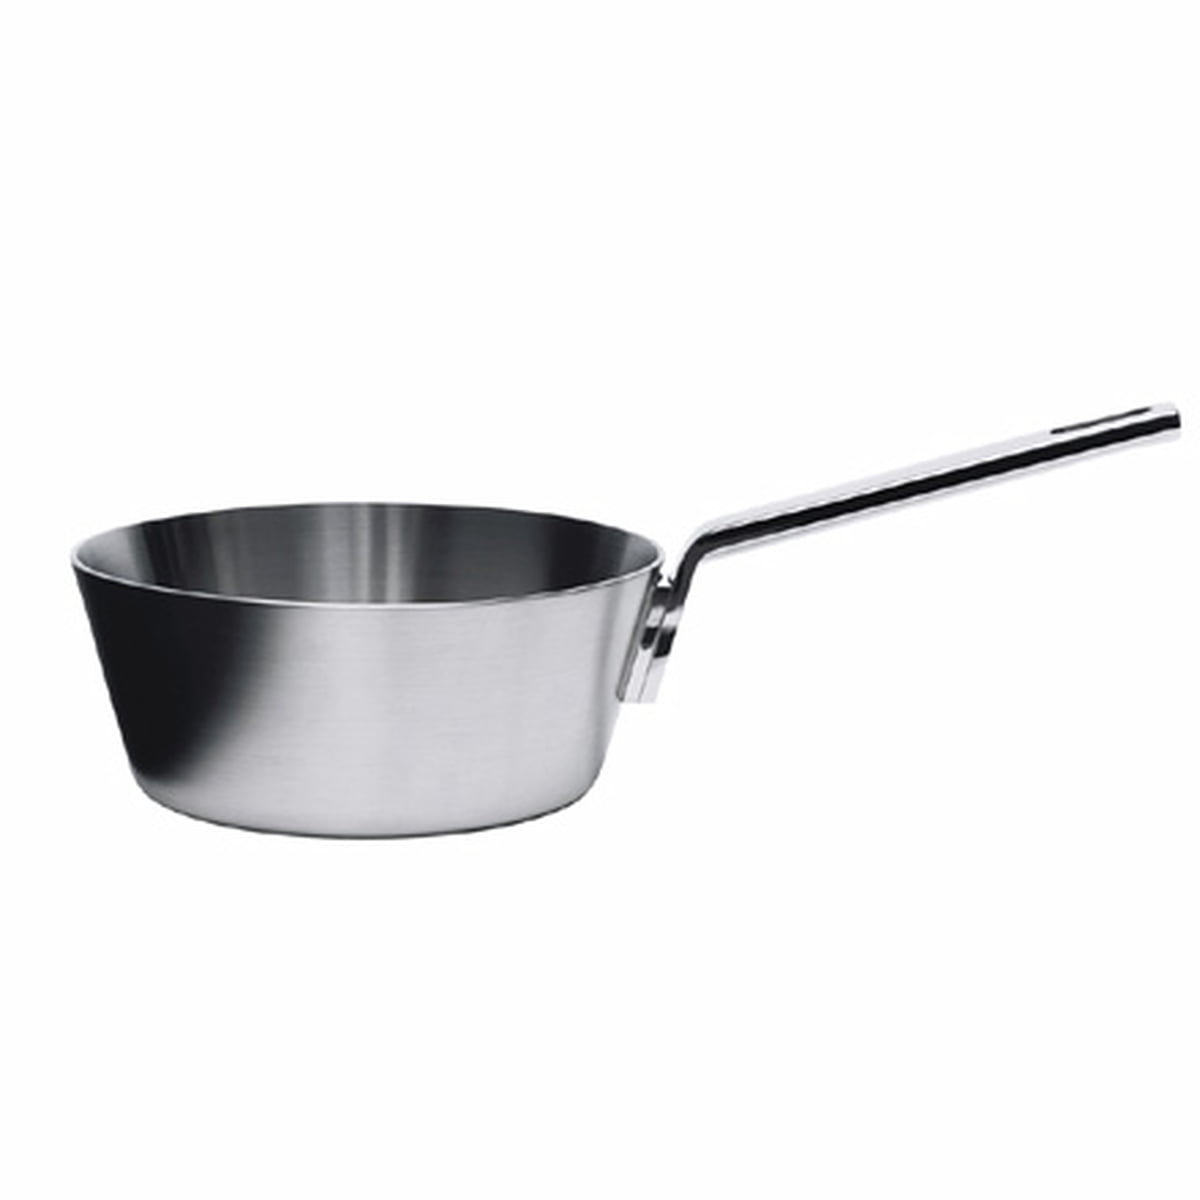 Tools cooking pots by Iittala in the interior design shop - Tools Sauteuse 2,5l